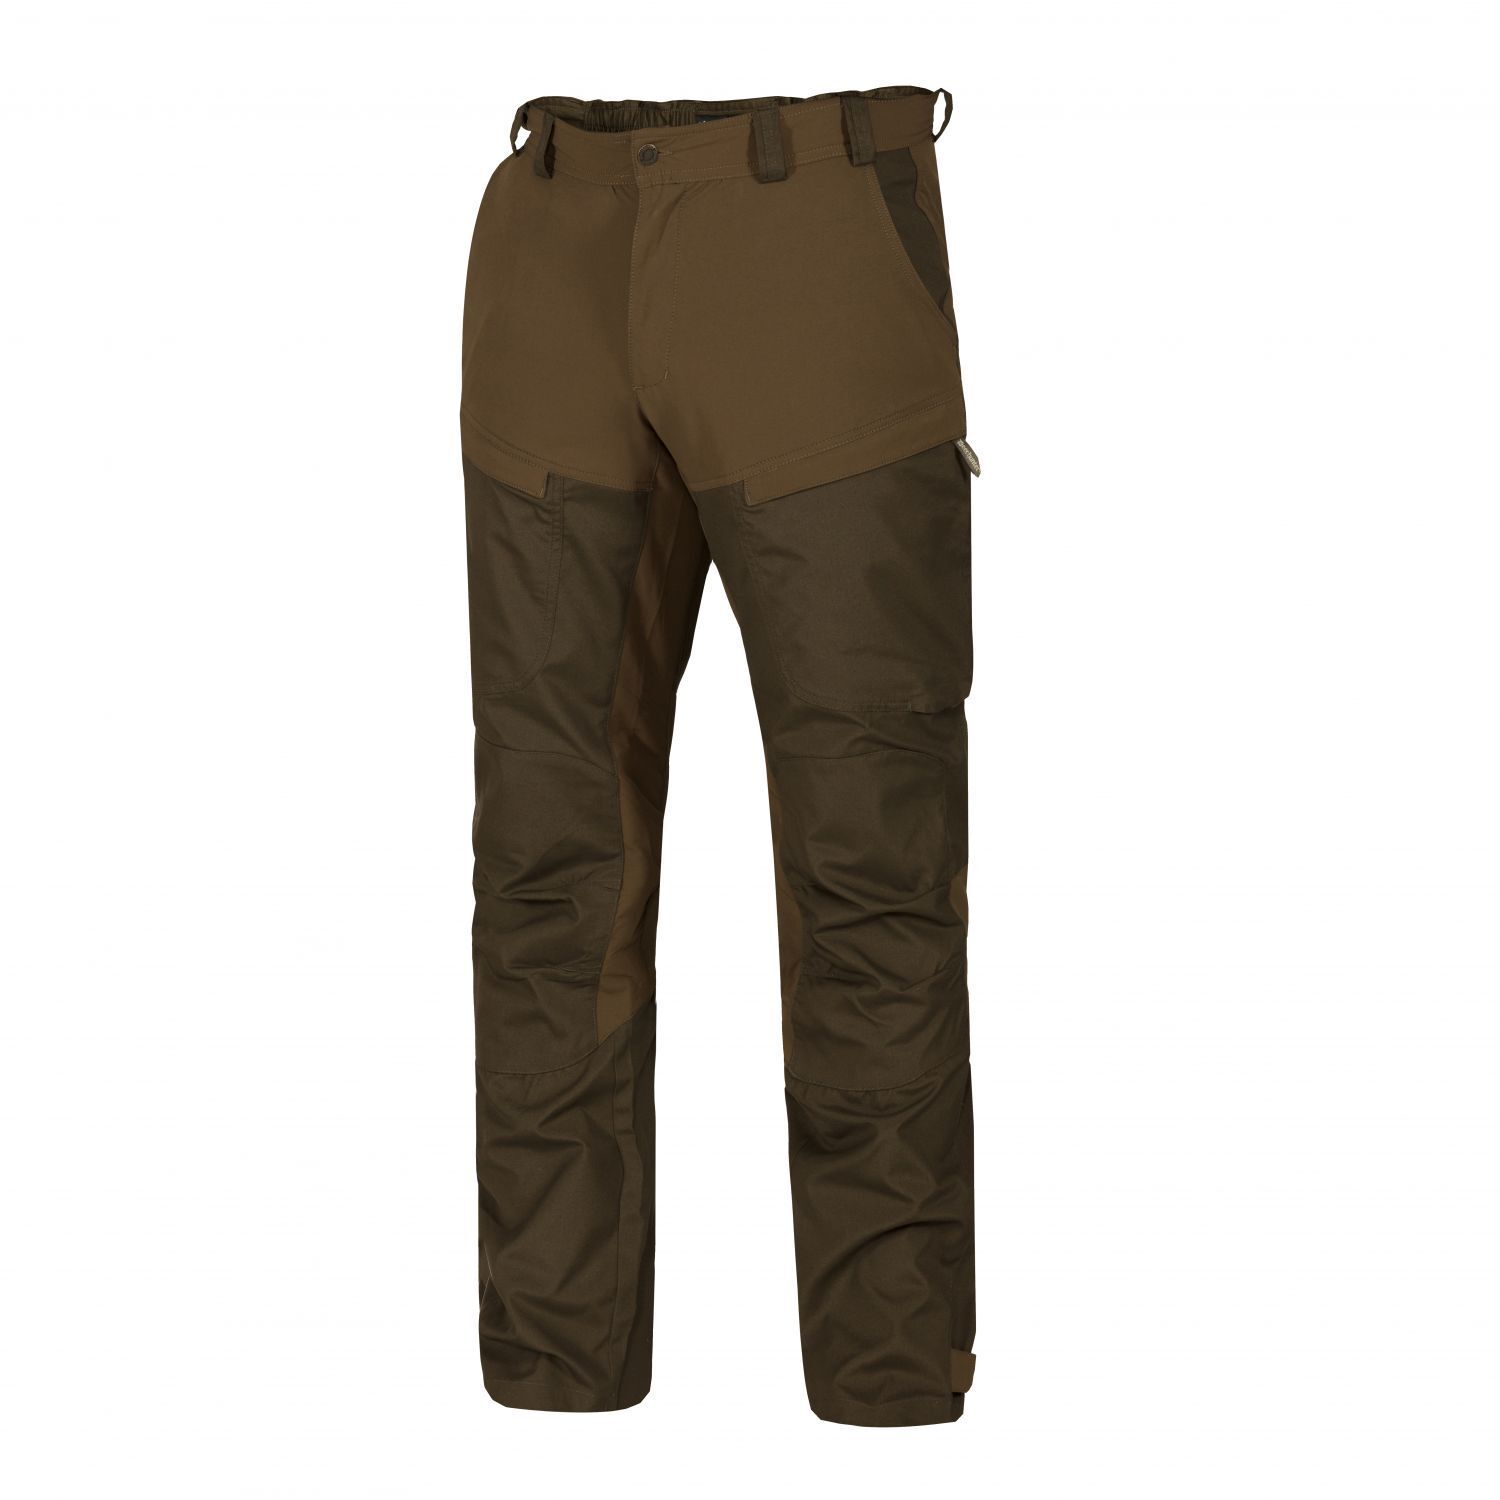 Deerhunter Strike Trousers Men's Trousers 388 DH Green Hunting Shooting Fishing